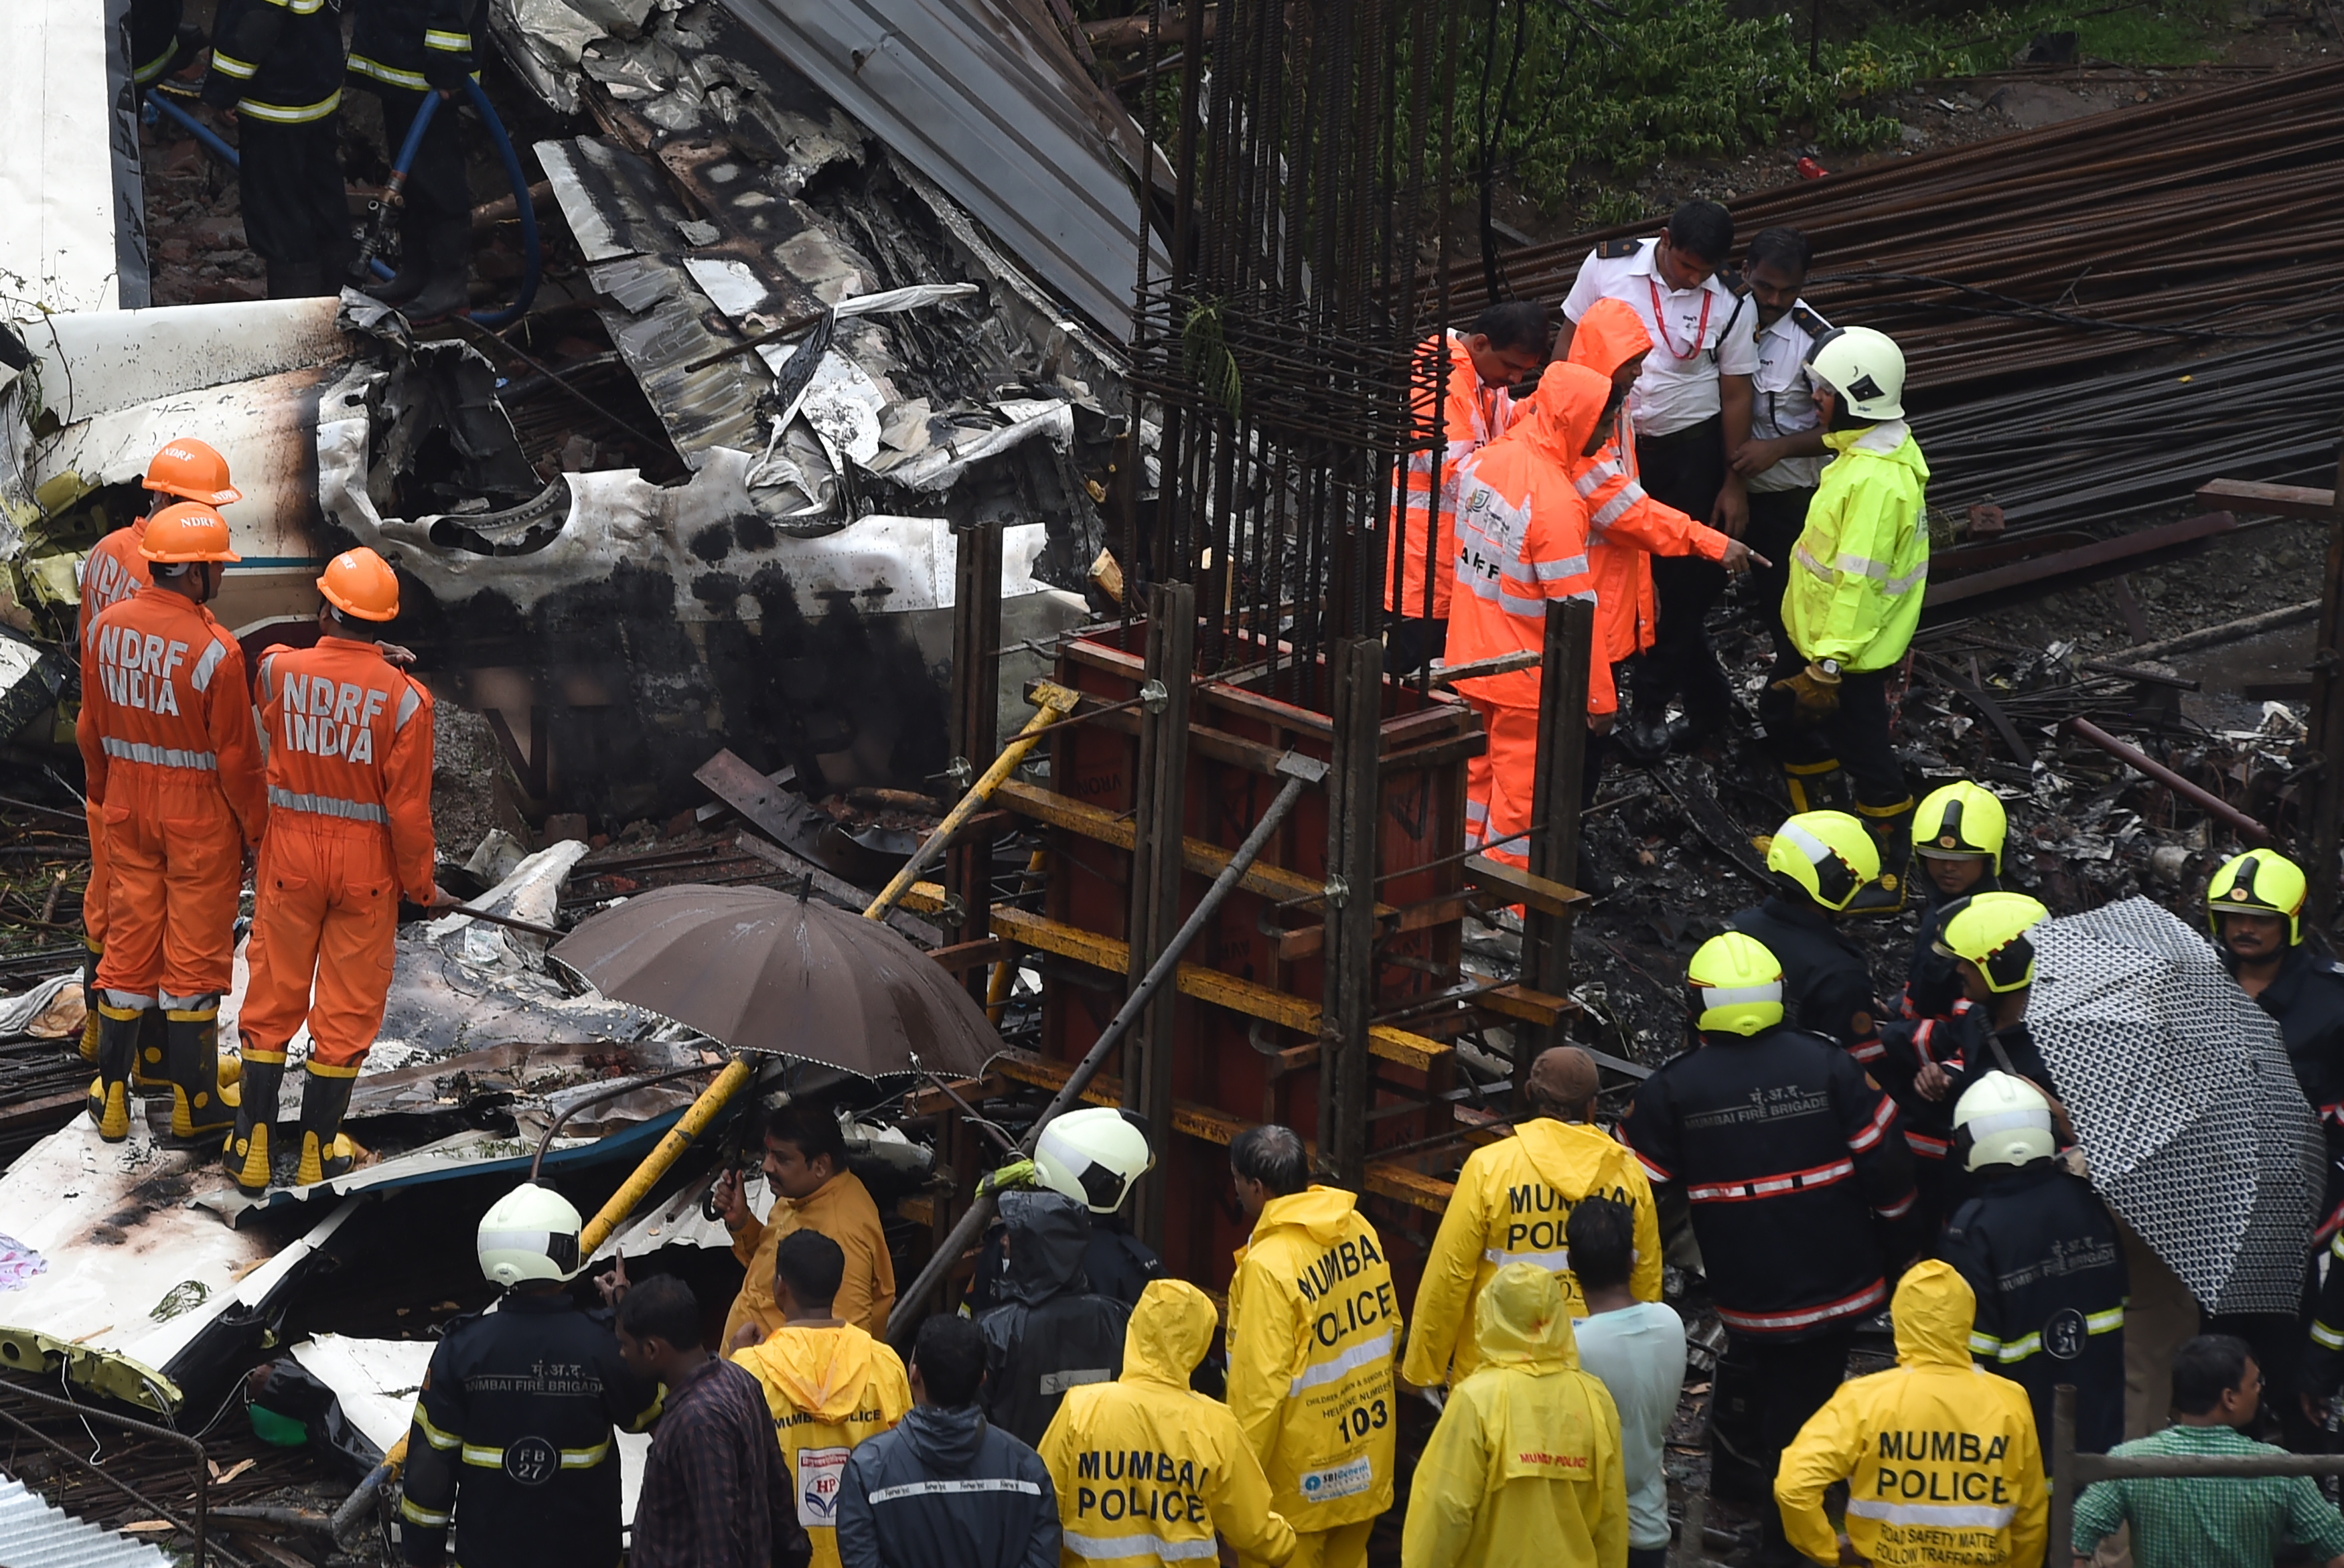 The Mumbai Police, NDRF and other rescue services personnel at the crash site. (Credit: AFP)